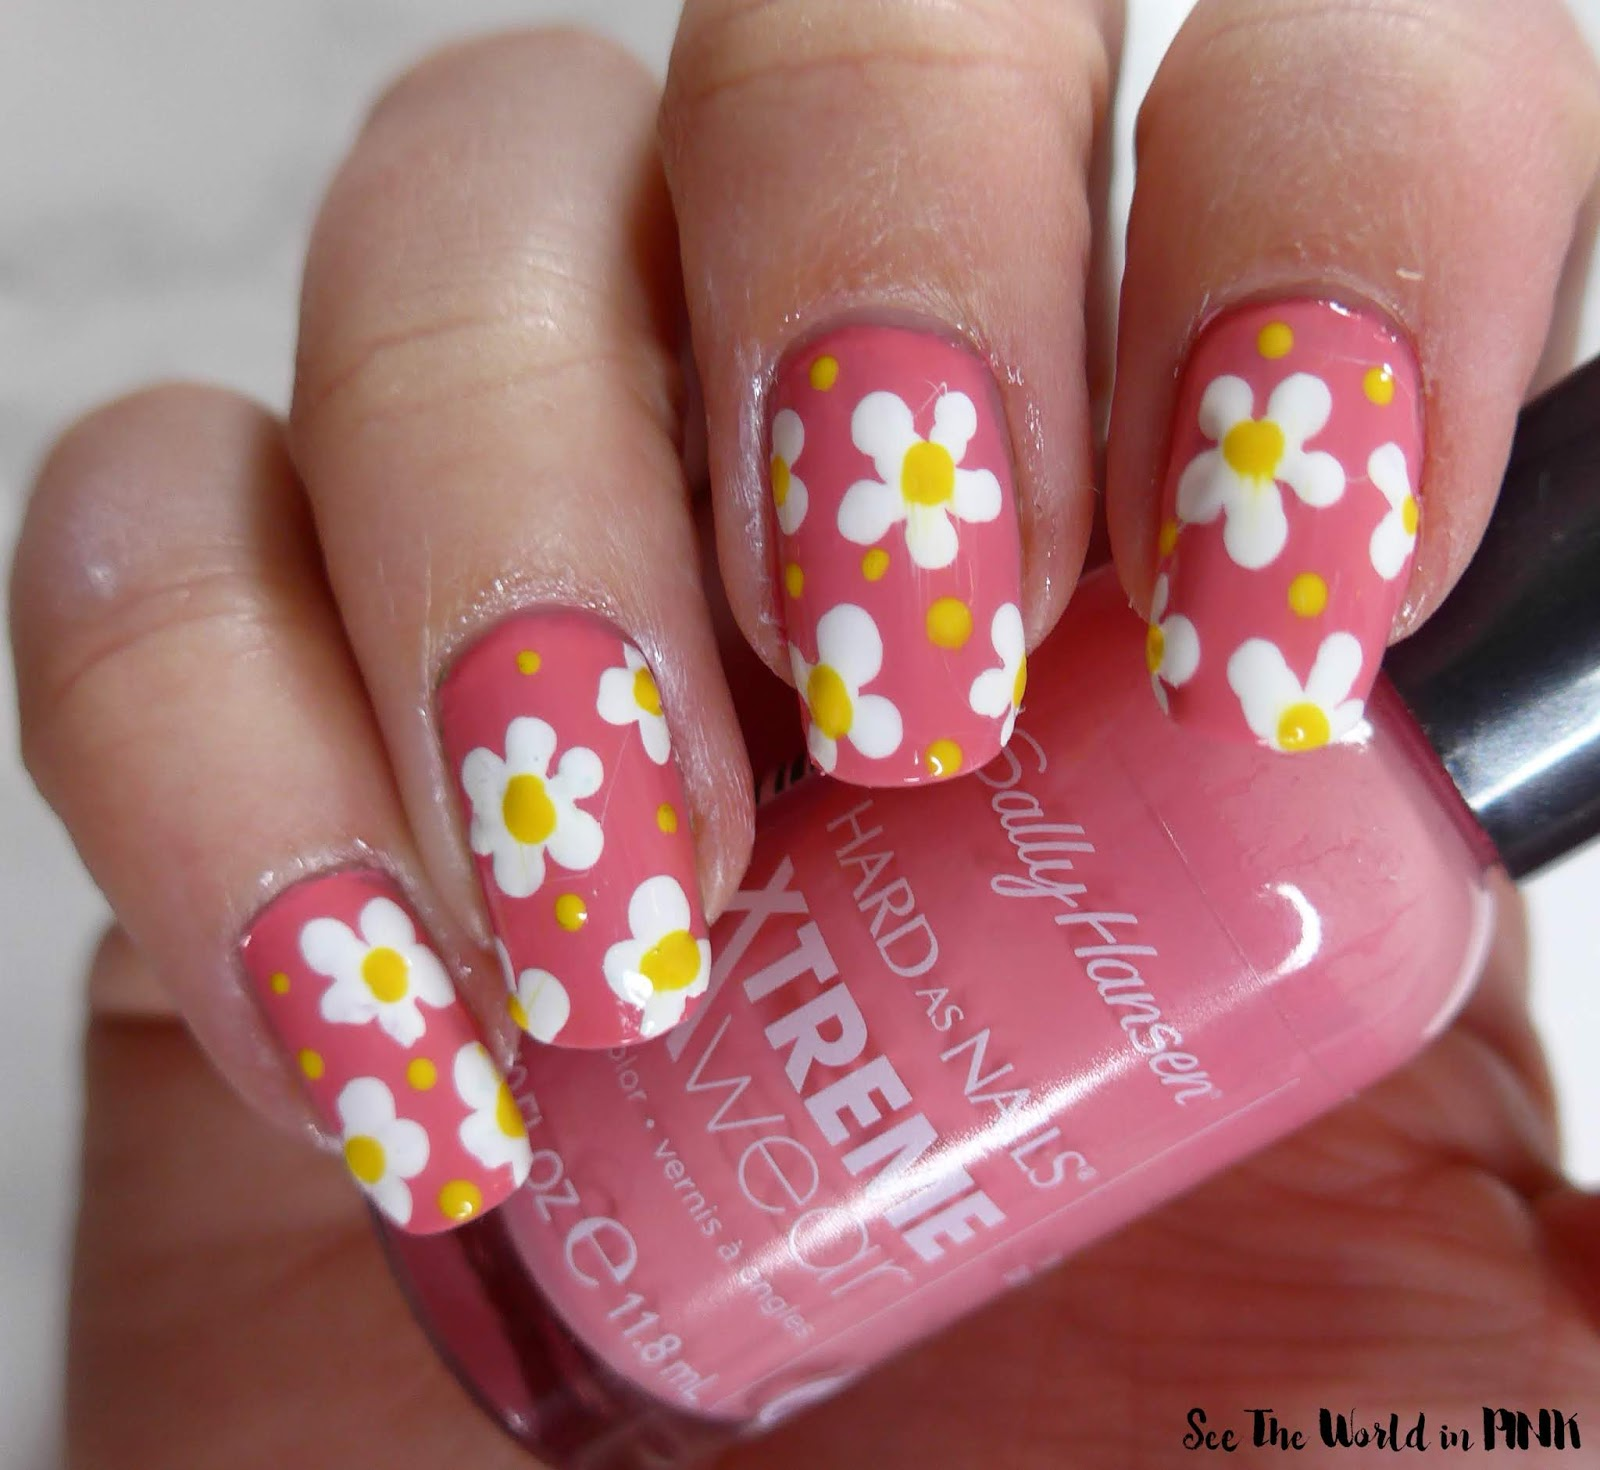 Manicure Monday - Best Summer Nail Art Looks!